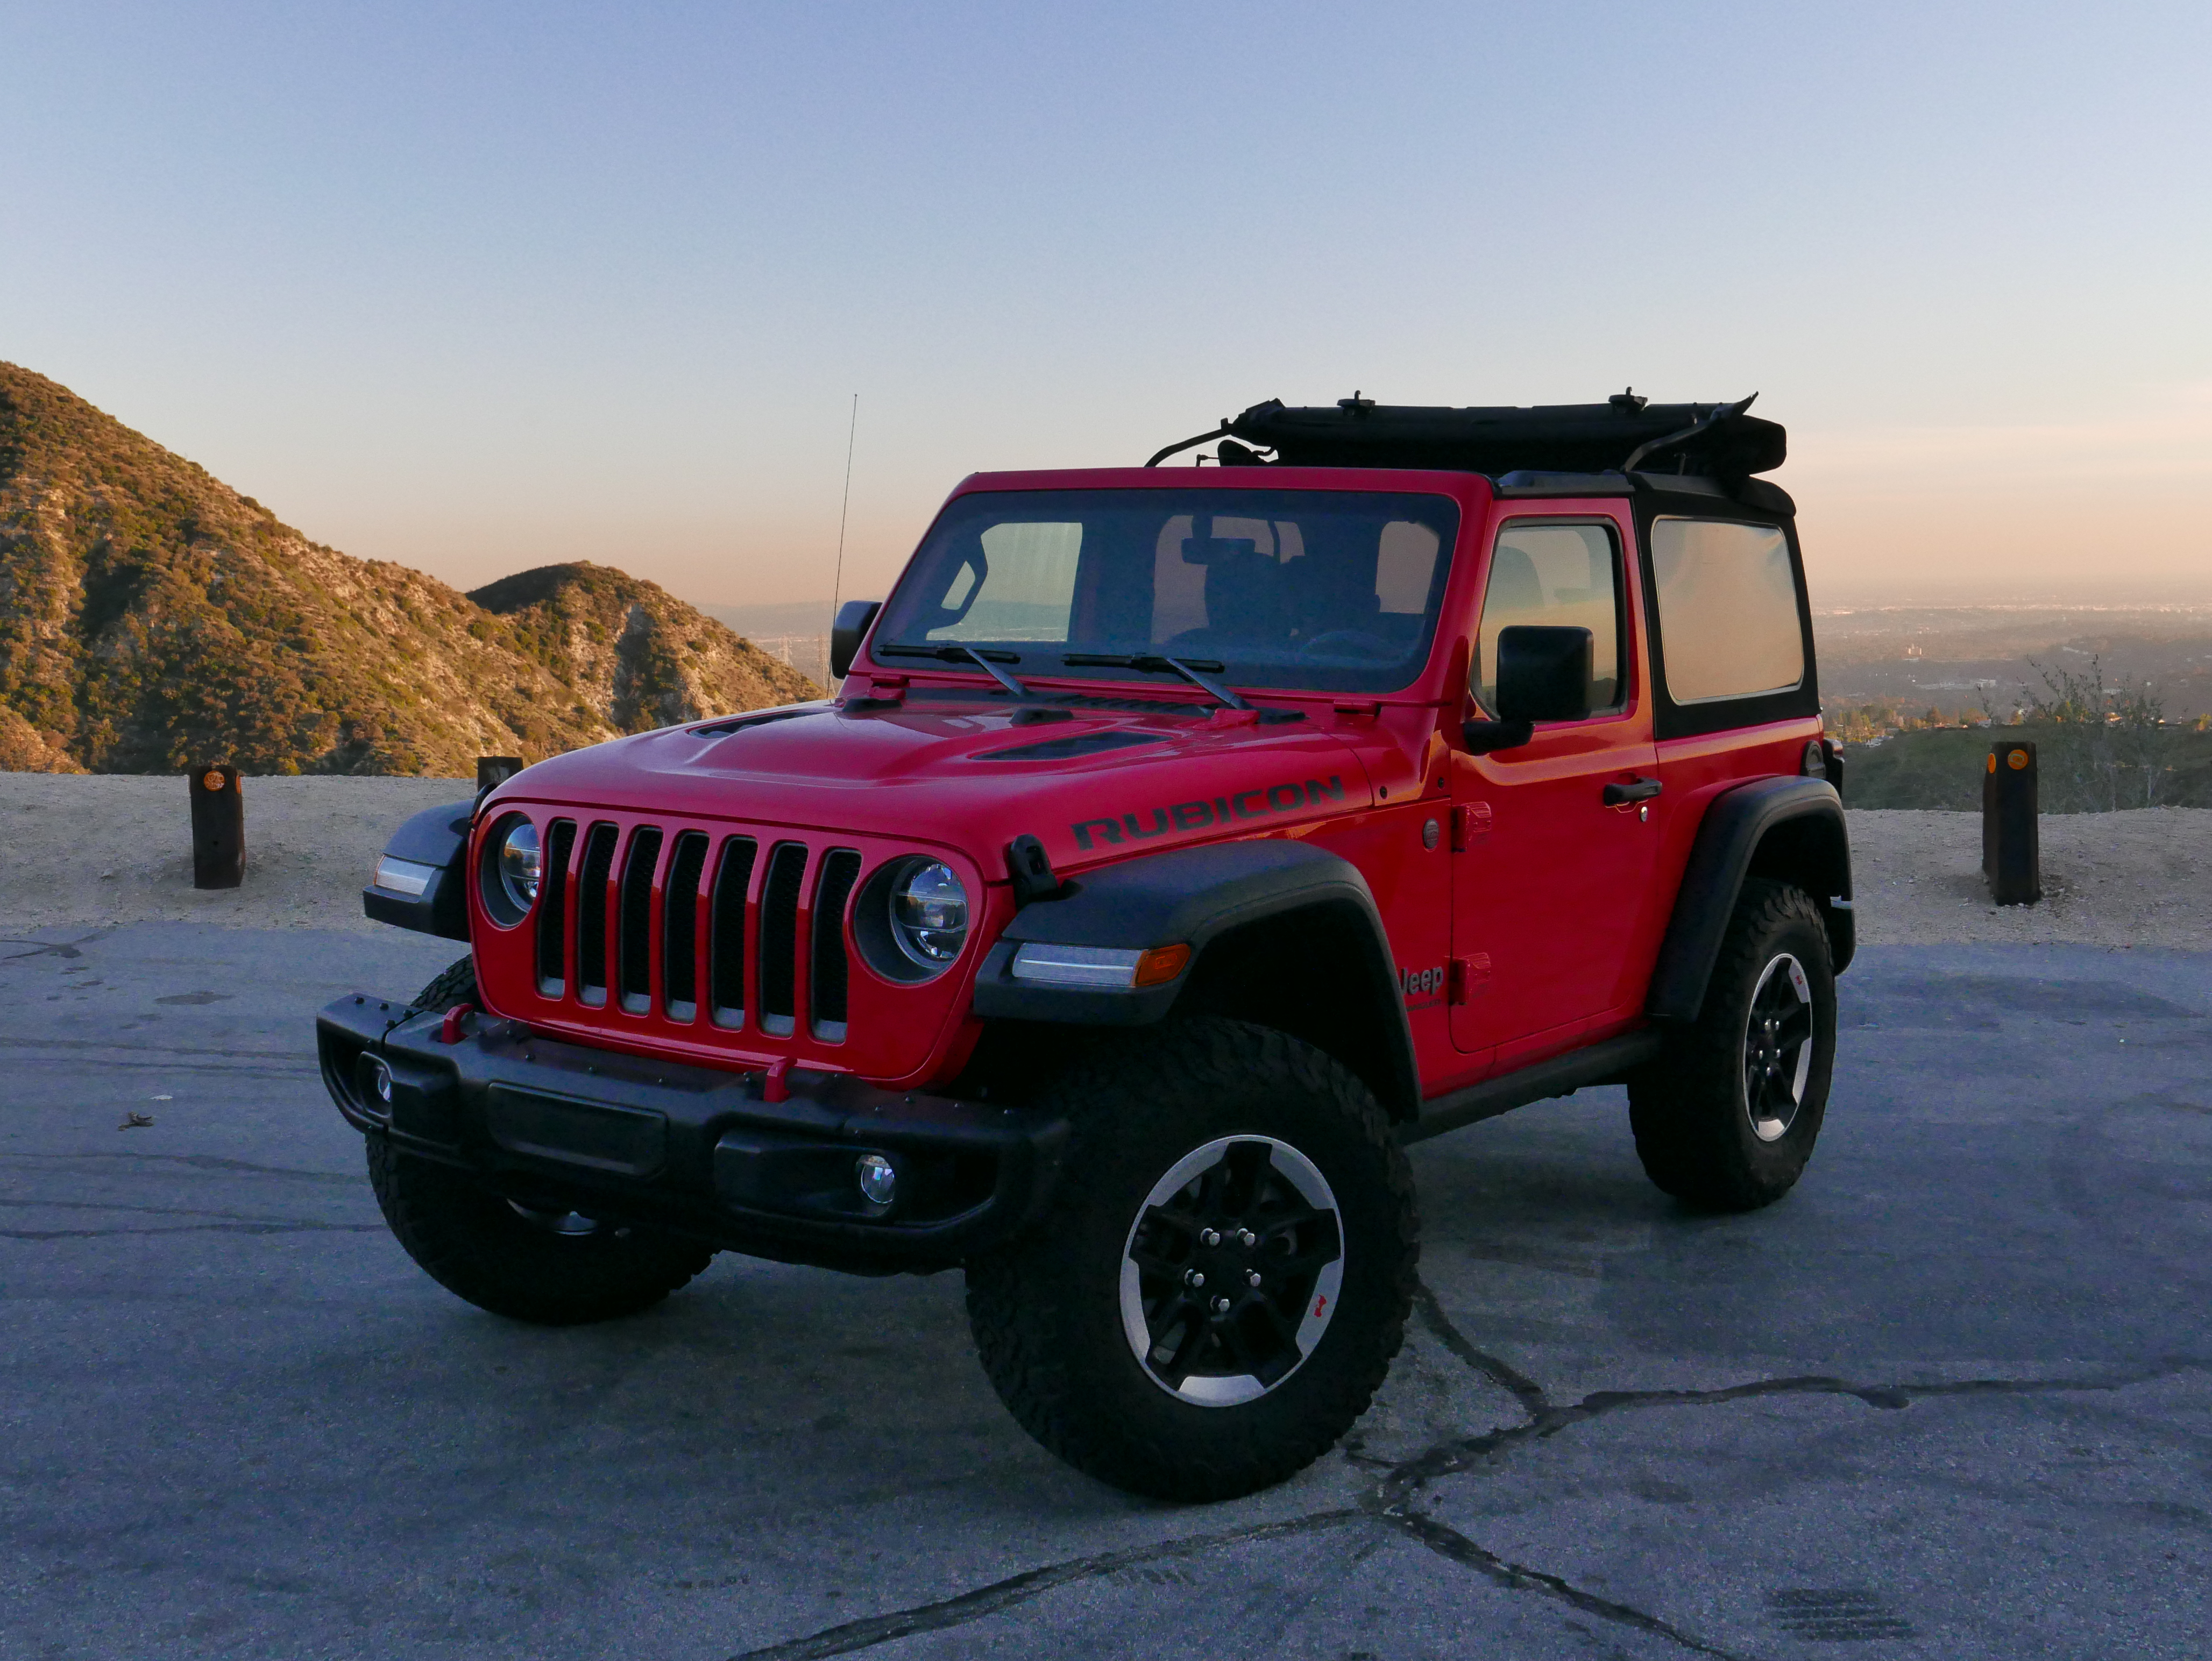 2019 Jeep Wrangler Rubicon Review Photo Benjamin Hunting